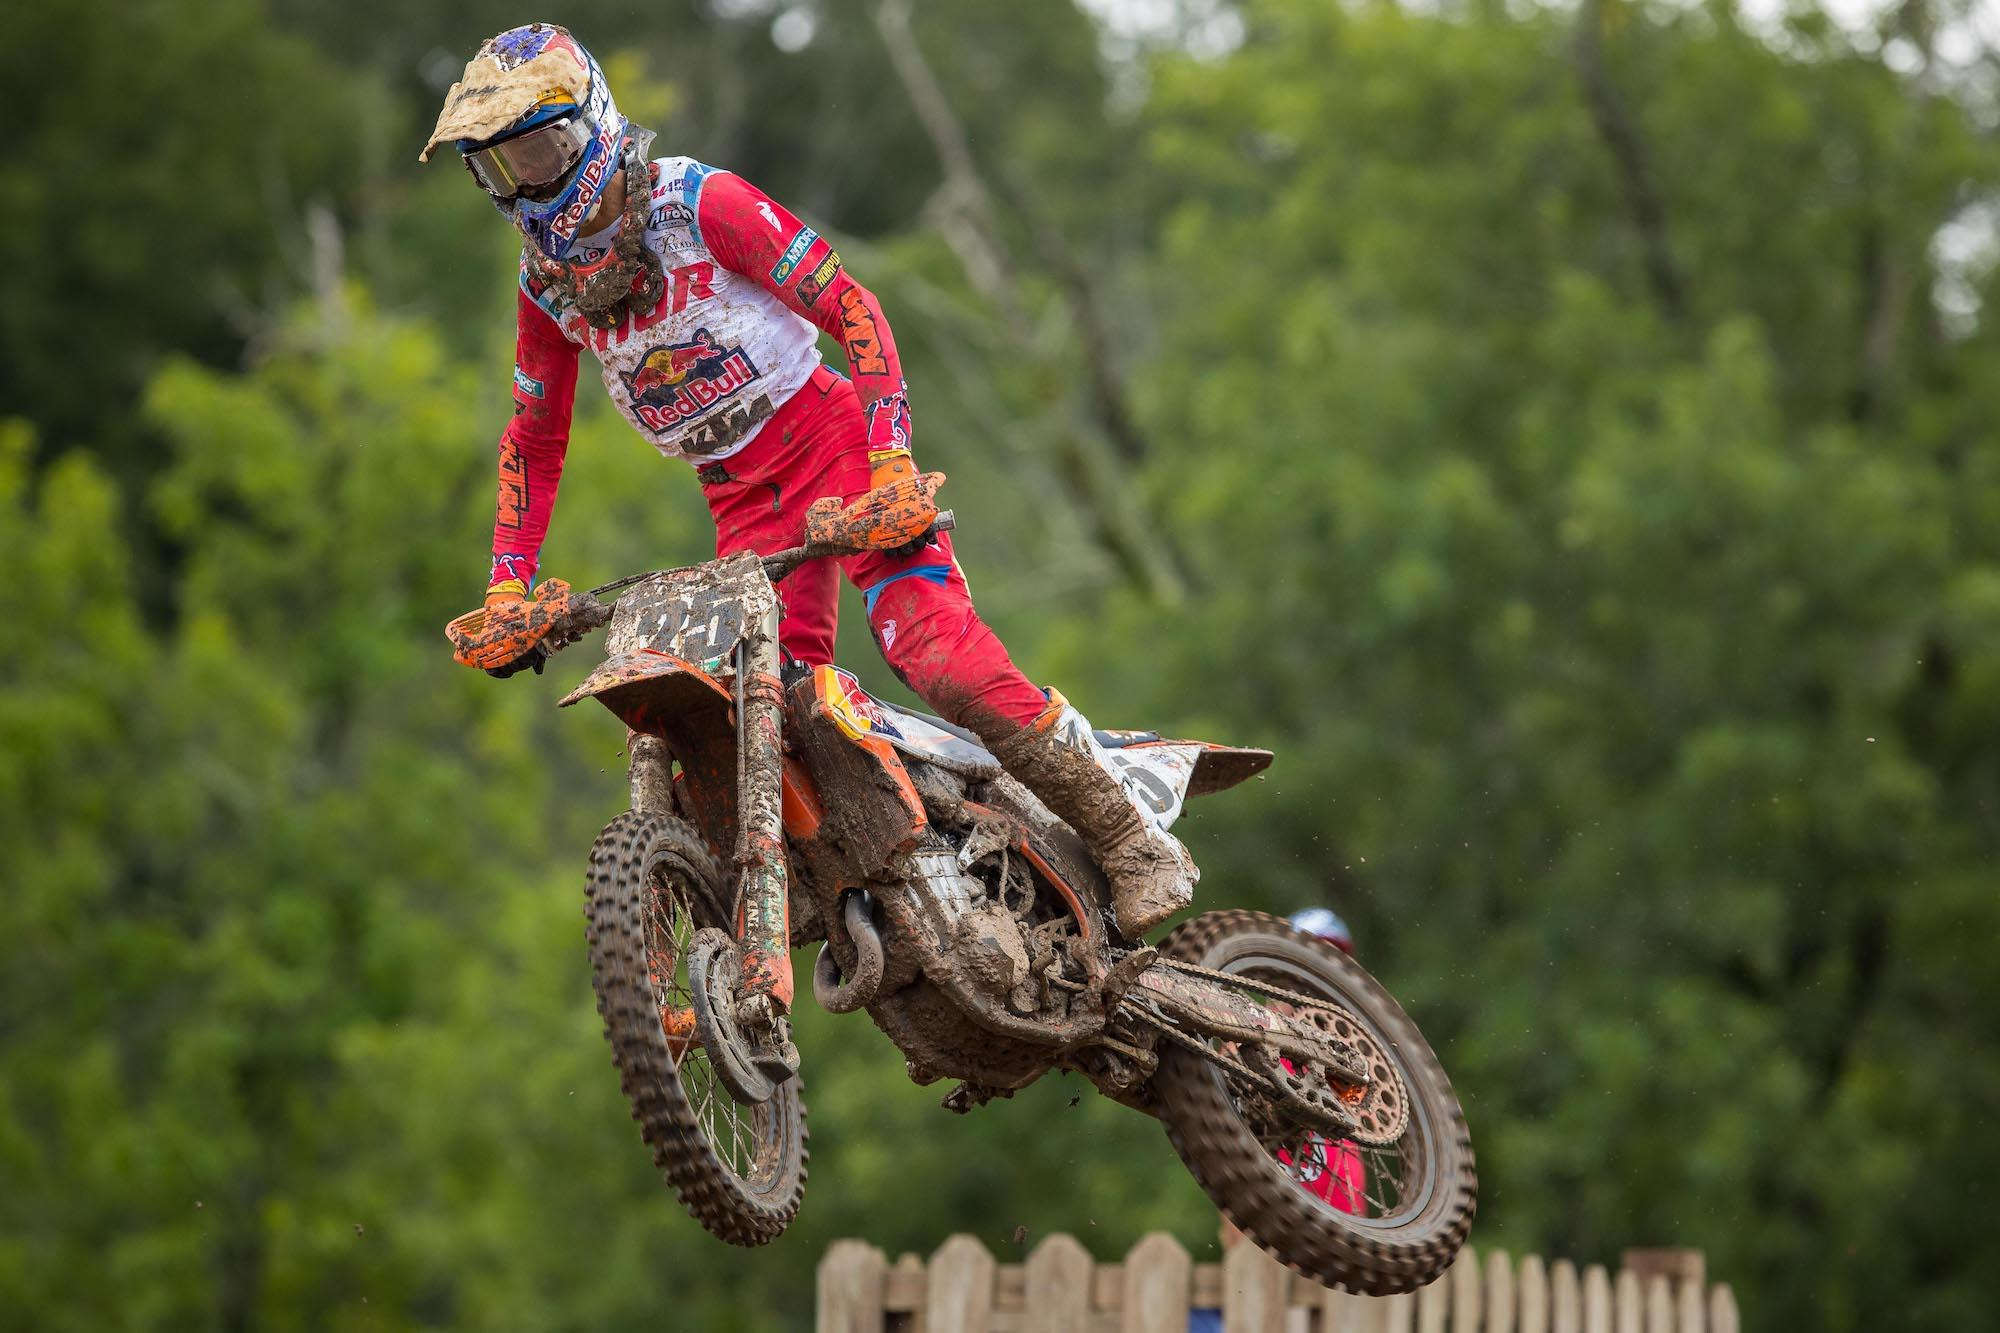 Marvin Musquin rounded out the 450 Class podium in third.